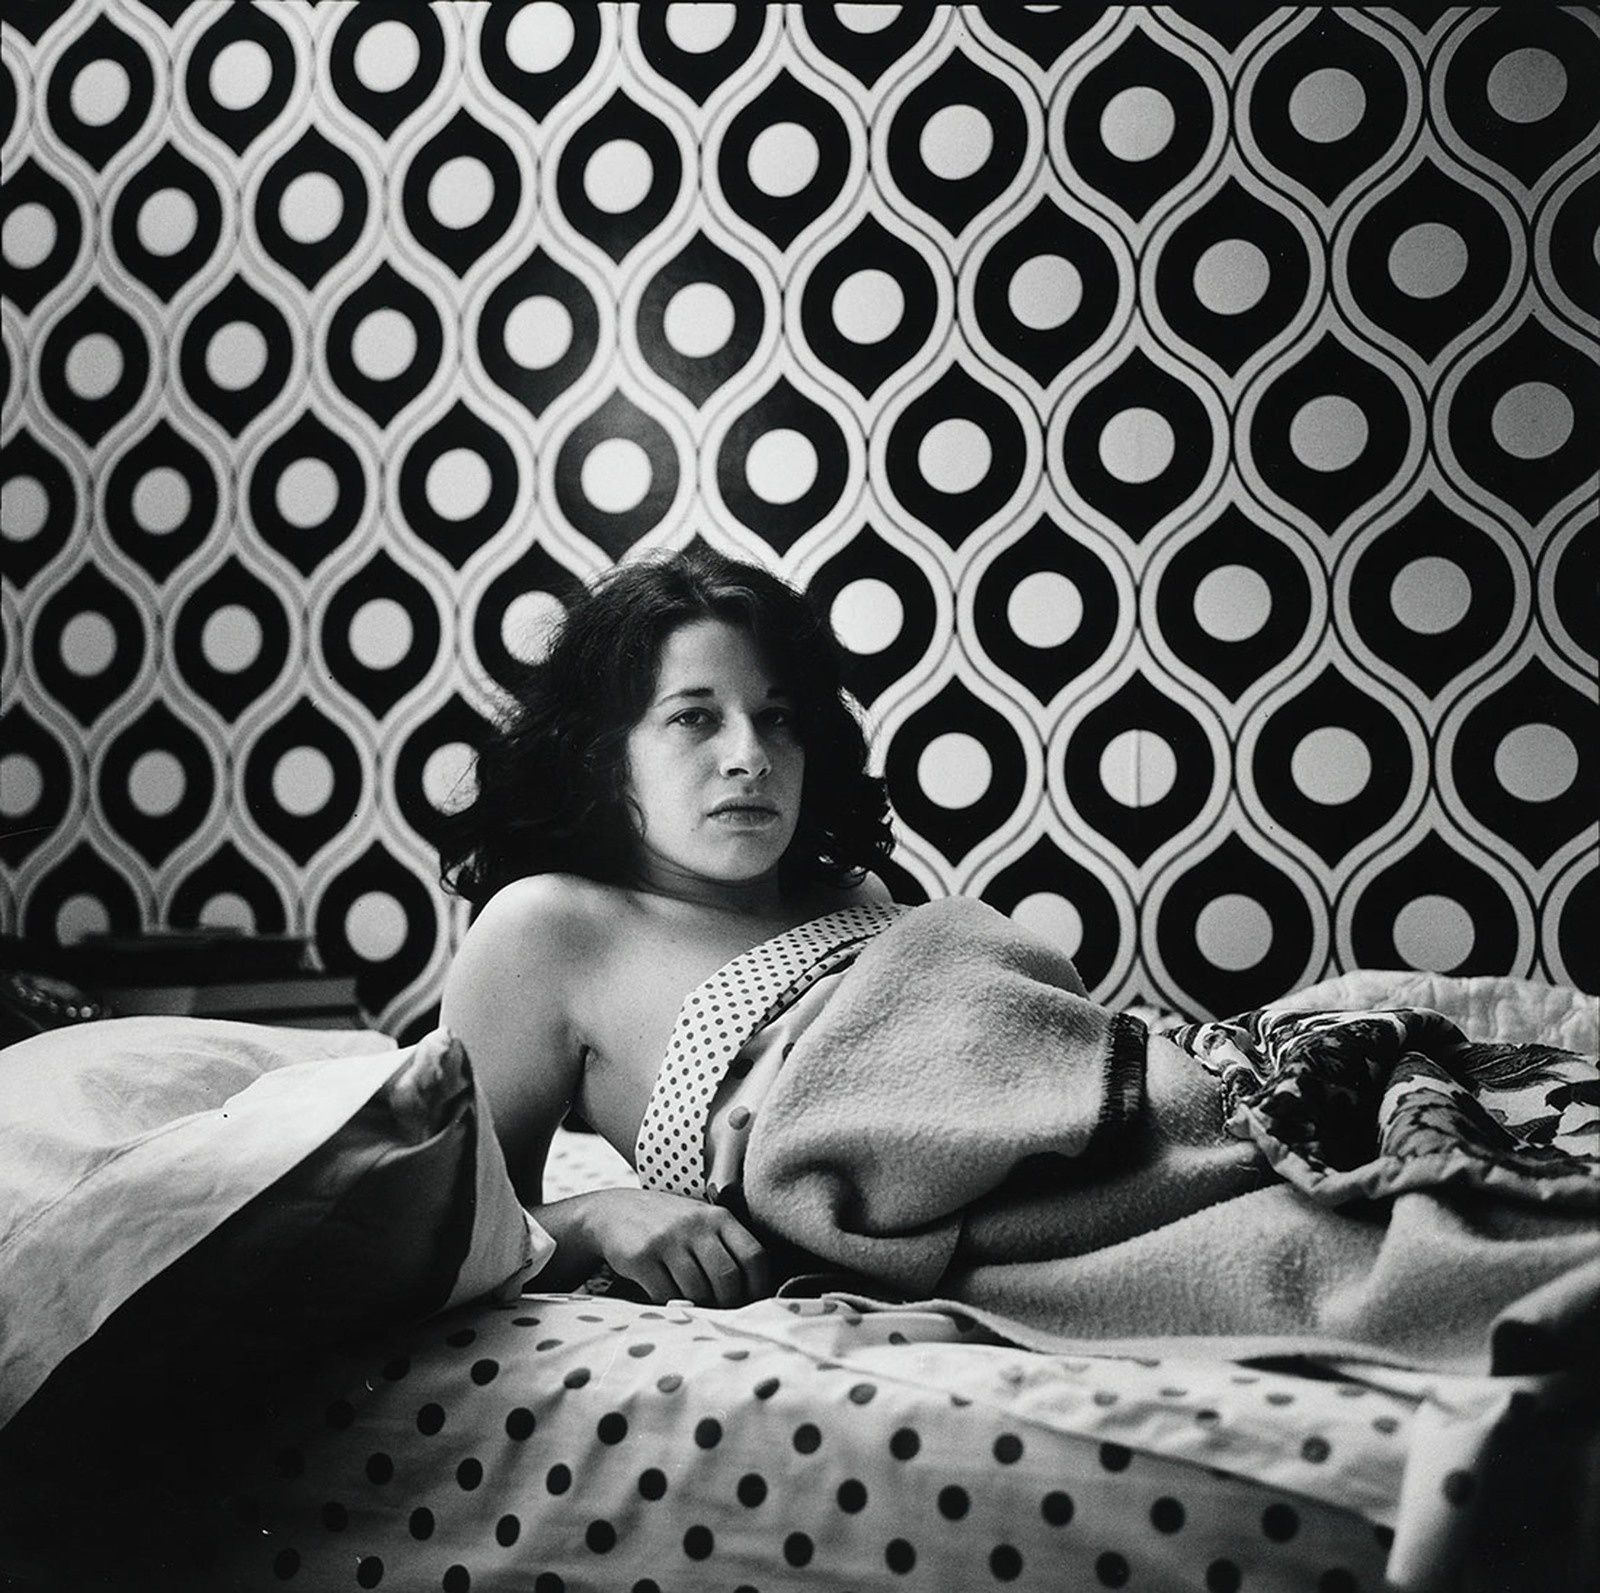  Fran Lebowitz at Home in Morristown, New Jersey 1974 Peter Hujar Tirage gélatino-argentique, The Morgan Library & Museum, achat en 2013 grâce au Charina Endowment Fund © Peter Hujar Archive, LLC, courtesy Pace/MacGill Gallery, New York and Fraenkel Gallery, San Francisco.